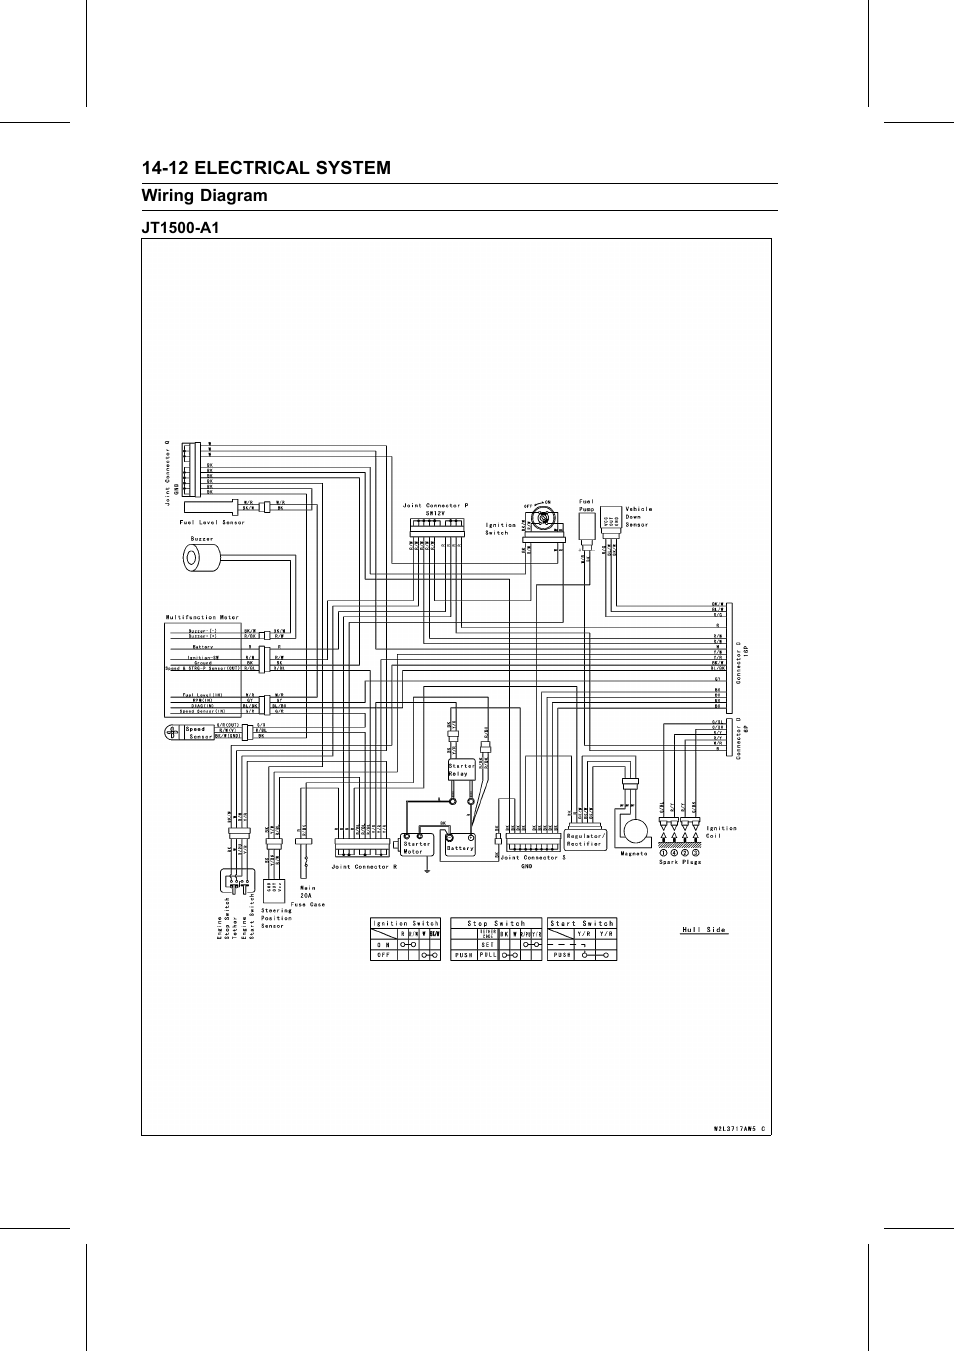 Jt1500a1     Wiring       diagram      Kawasaki    STX   15F User Manual